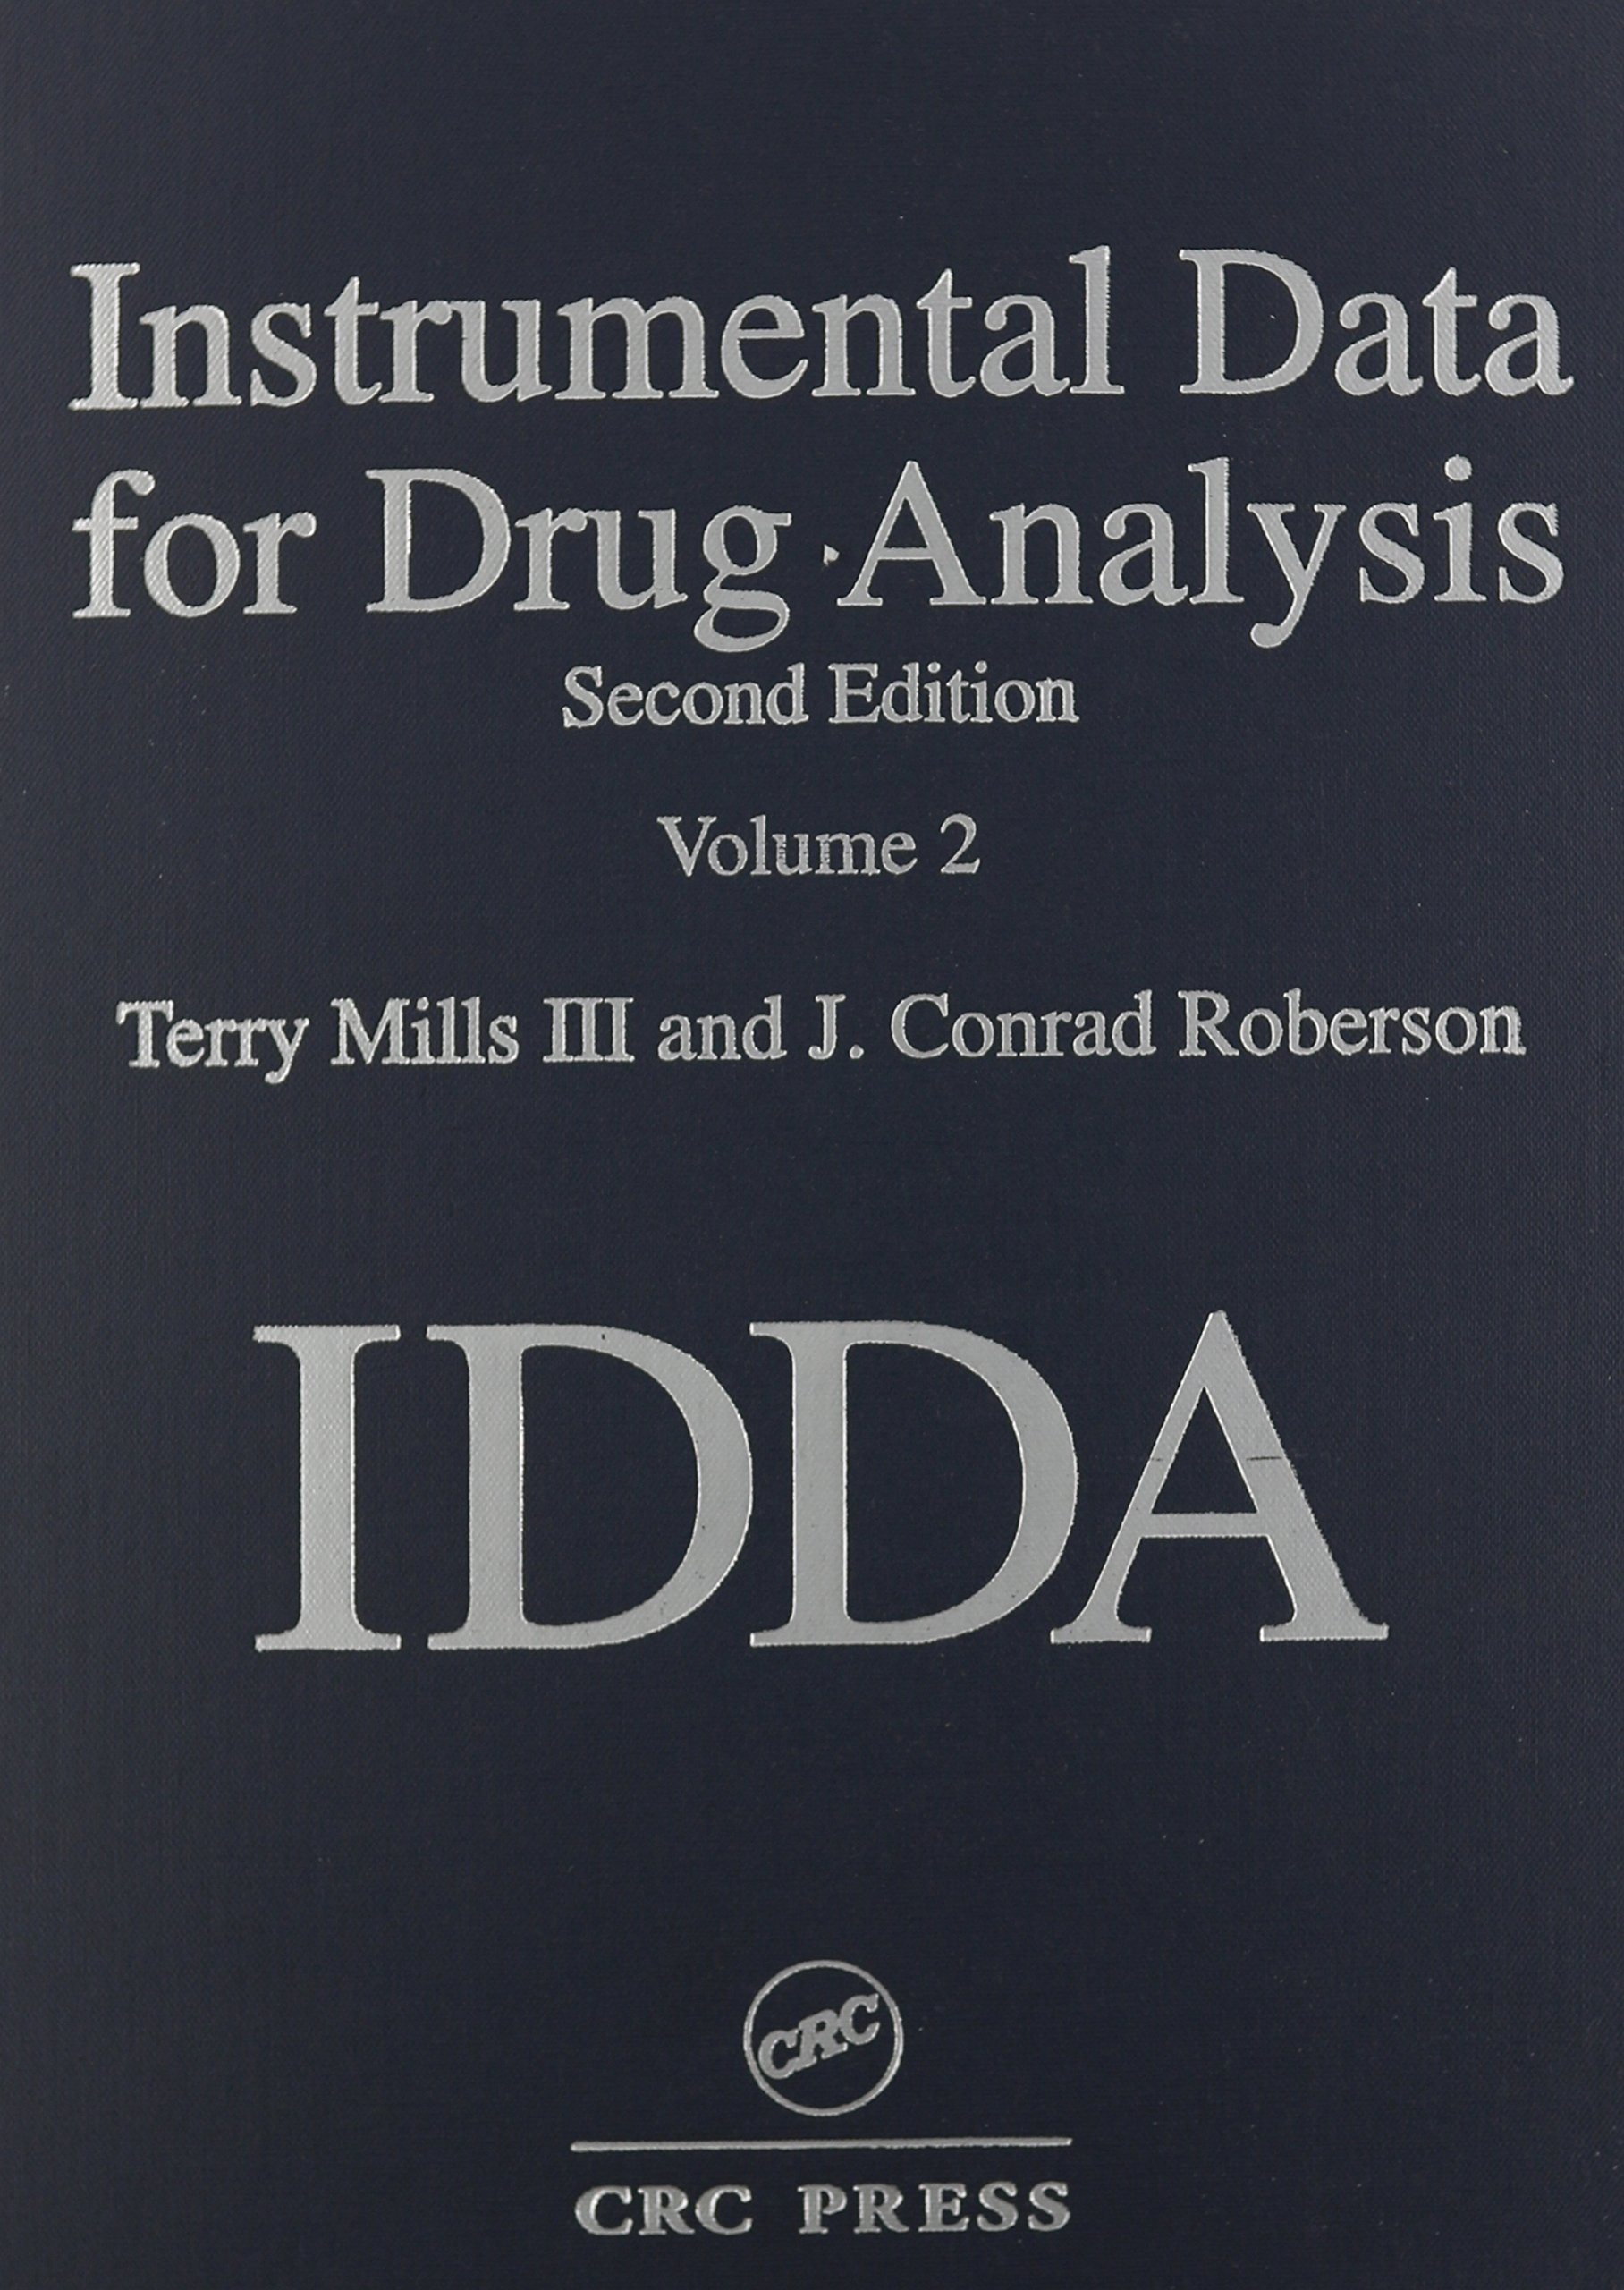 Instrumental Data for Drug Analysis, Second Edition, Volume II